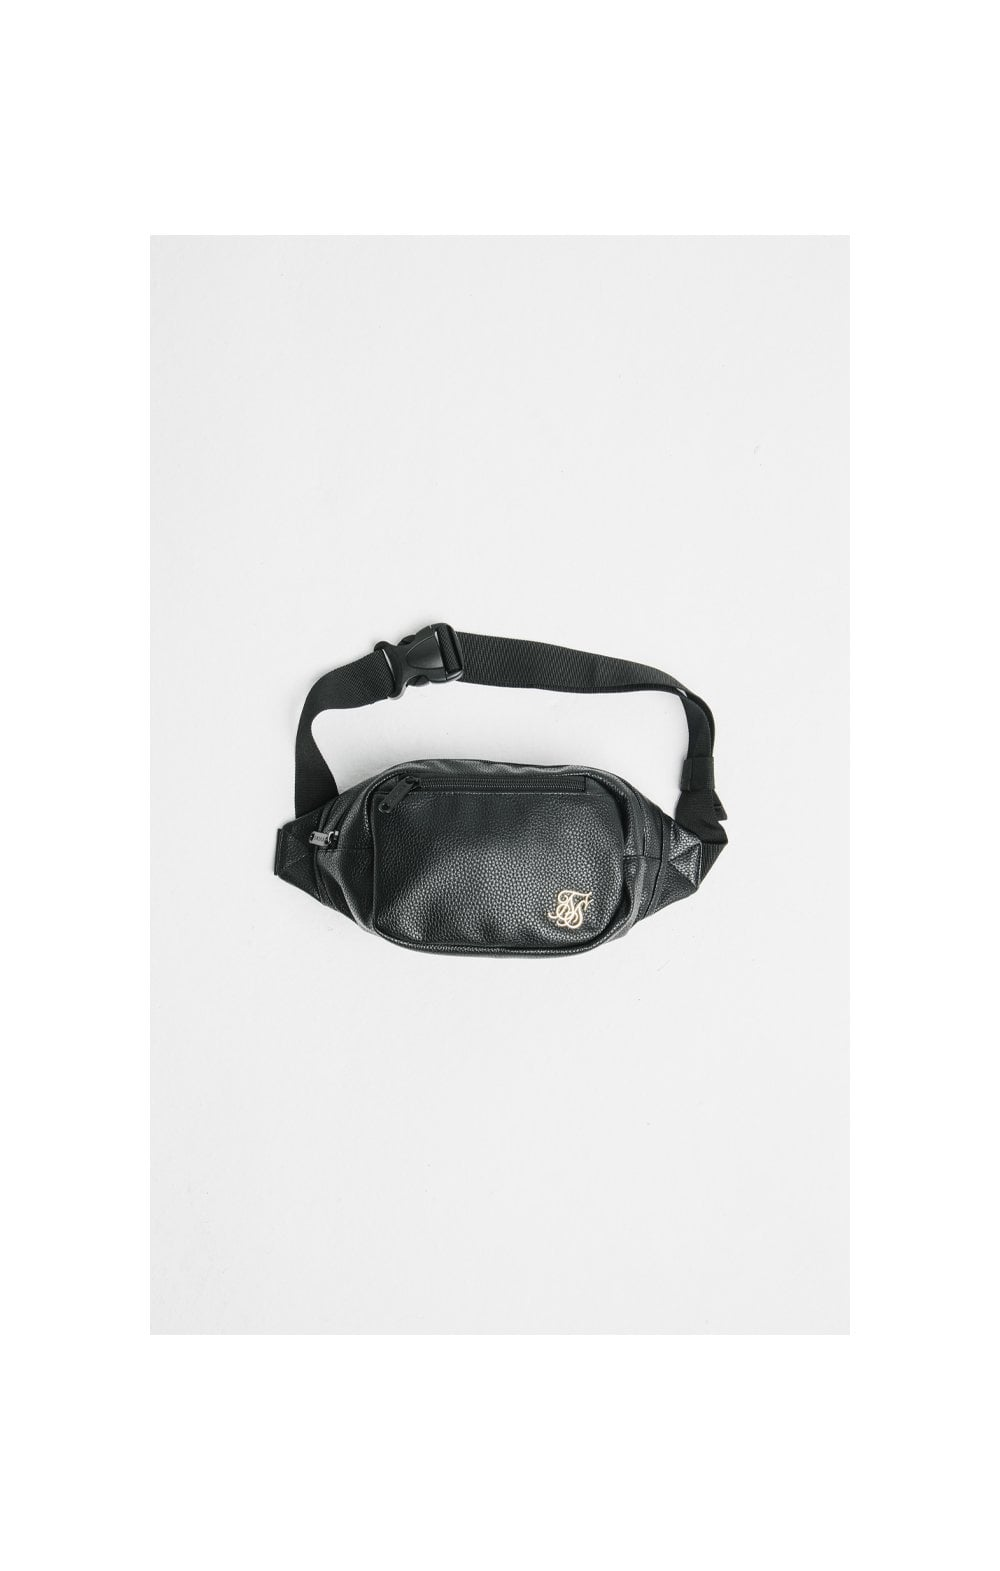 Load image into Gallery viewer, SikSilk Bumbag - Black (4)